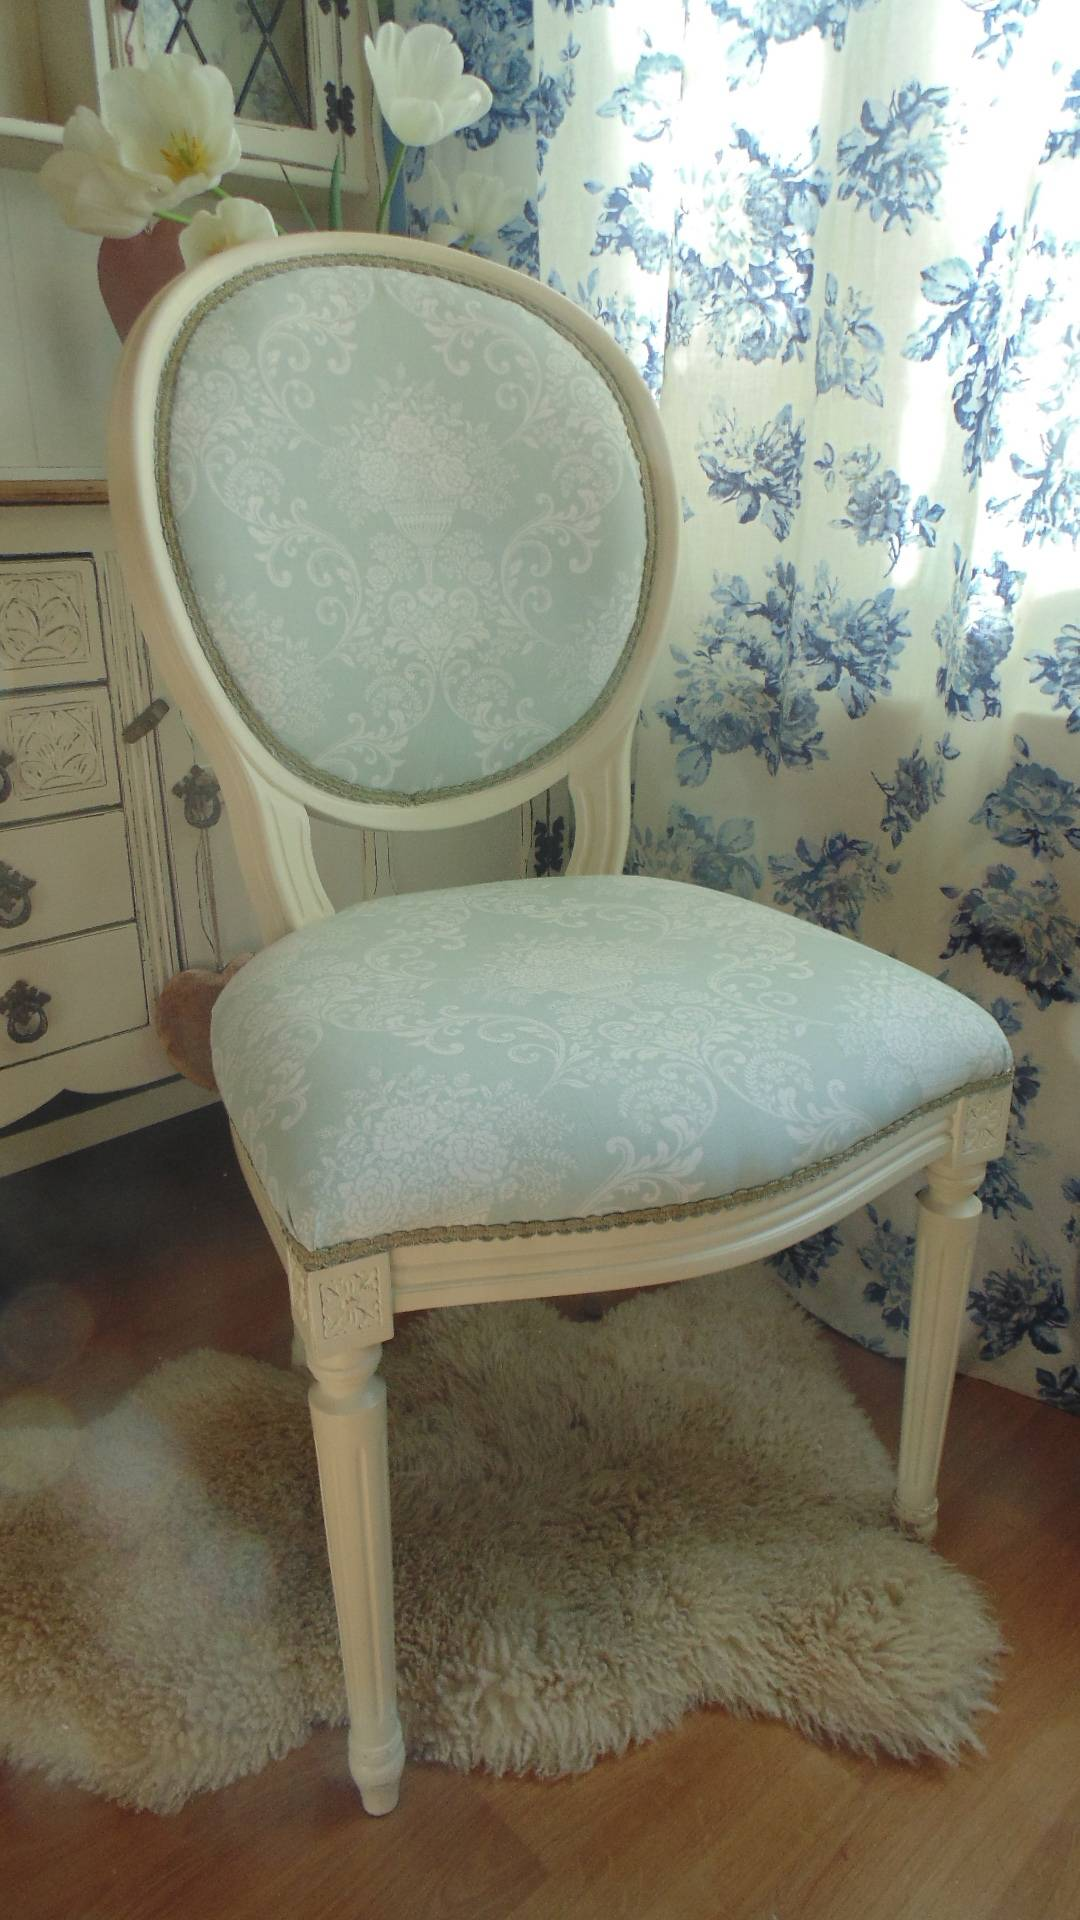 Frech Louis Stle Chair in Pale Green Fabric